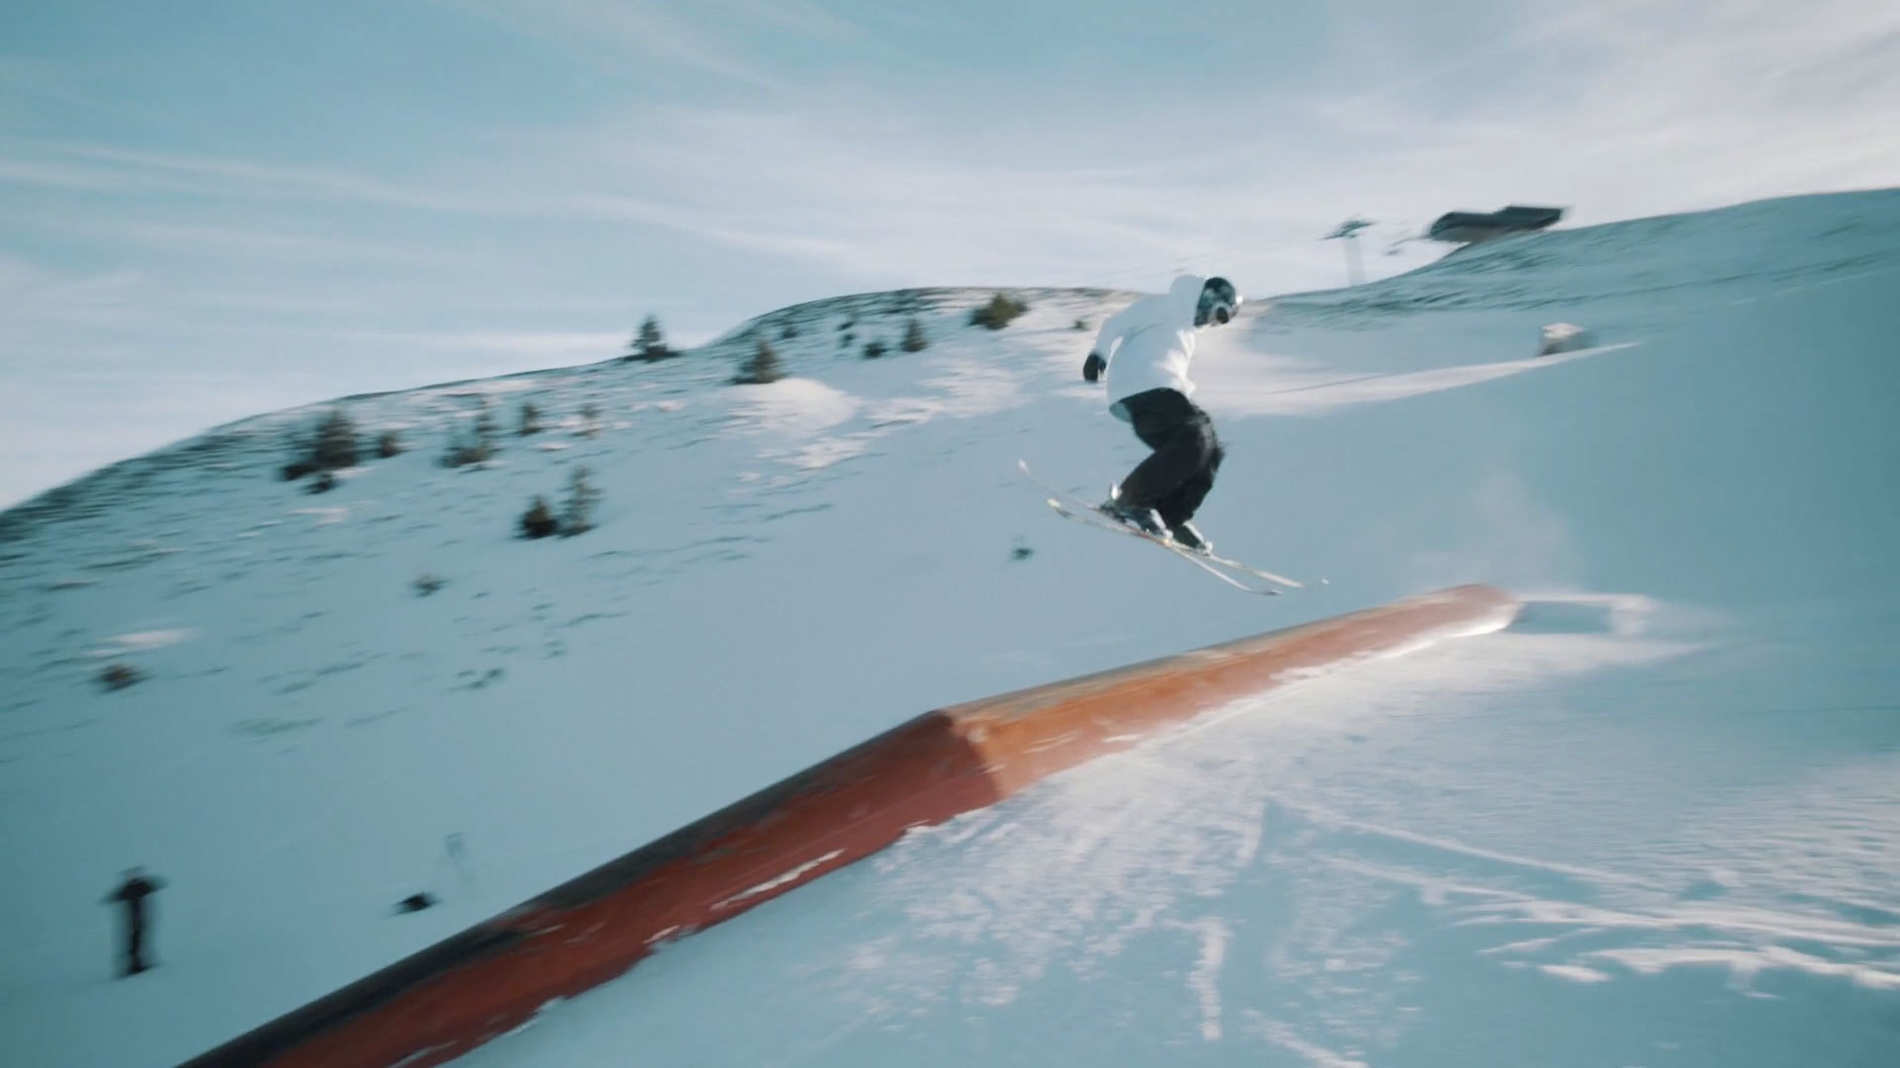 Tim Van Dyck at Snowpark Kitzbühel - Season 2016/17